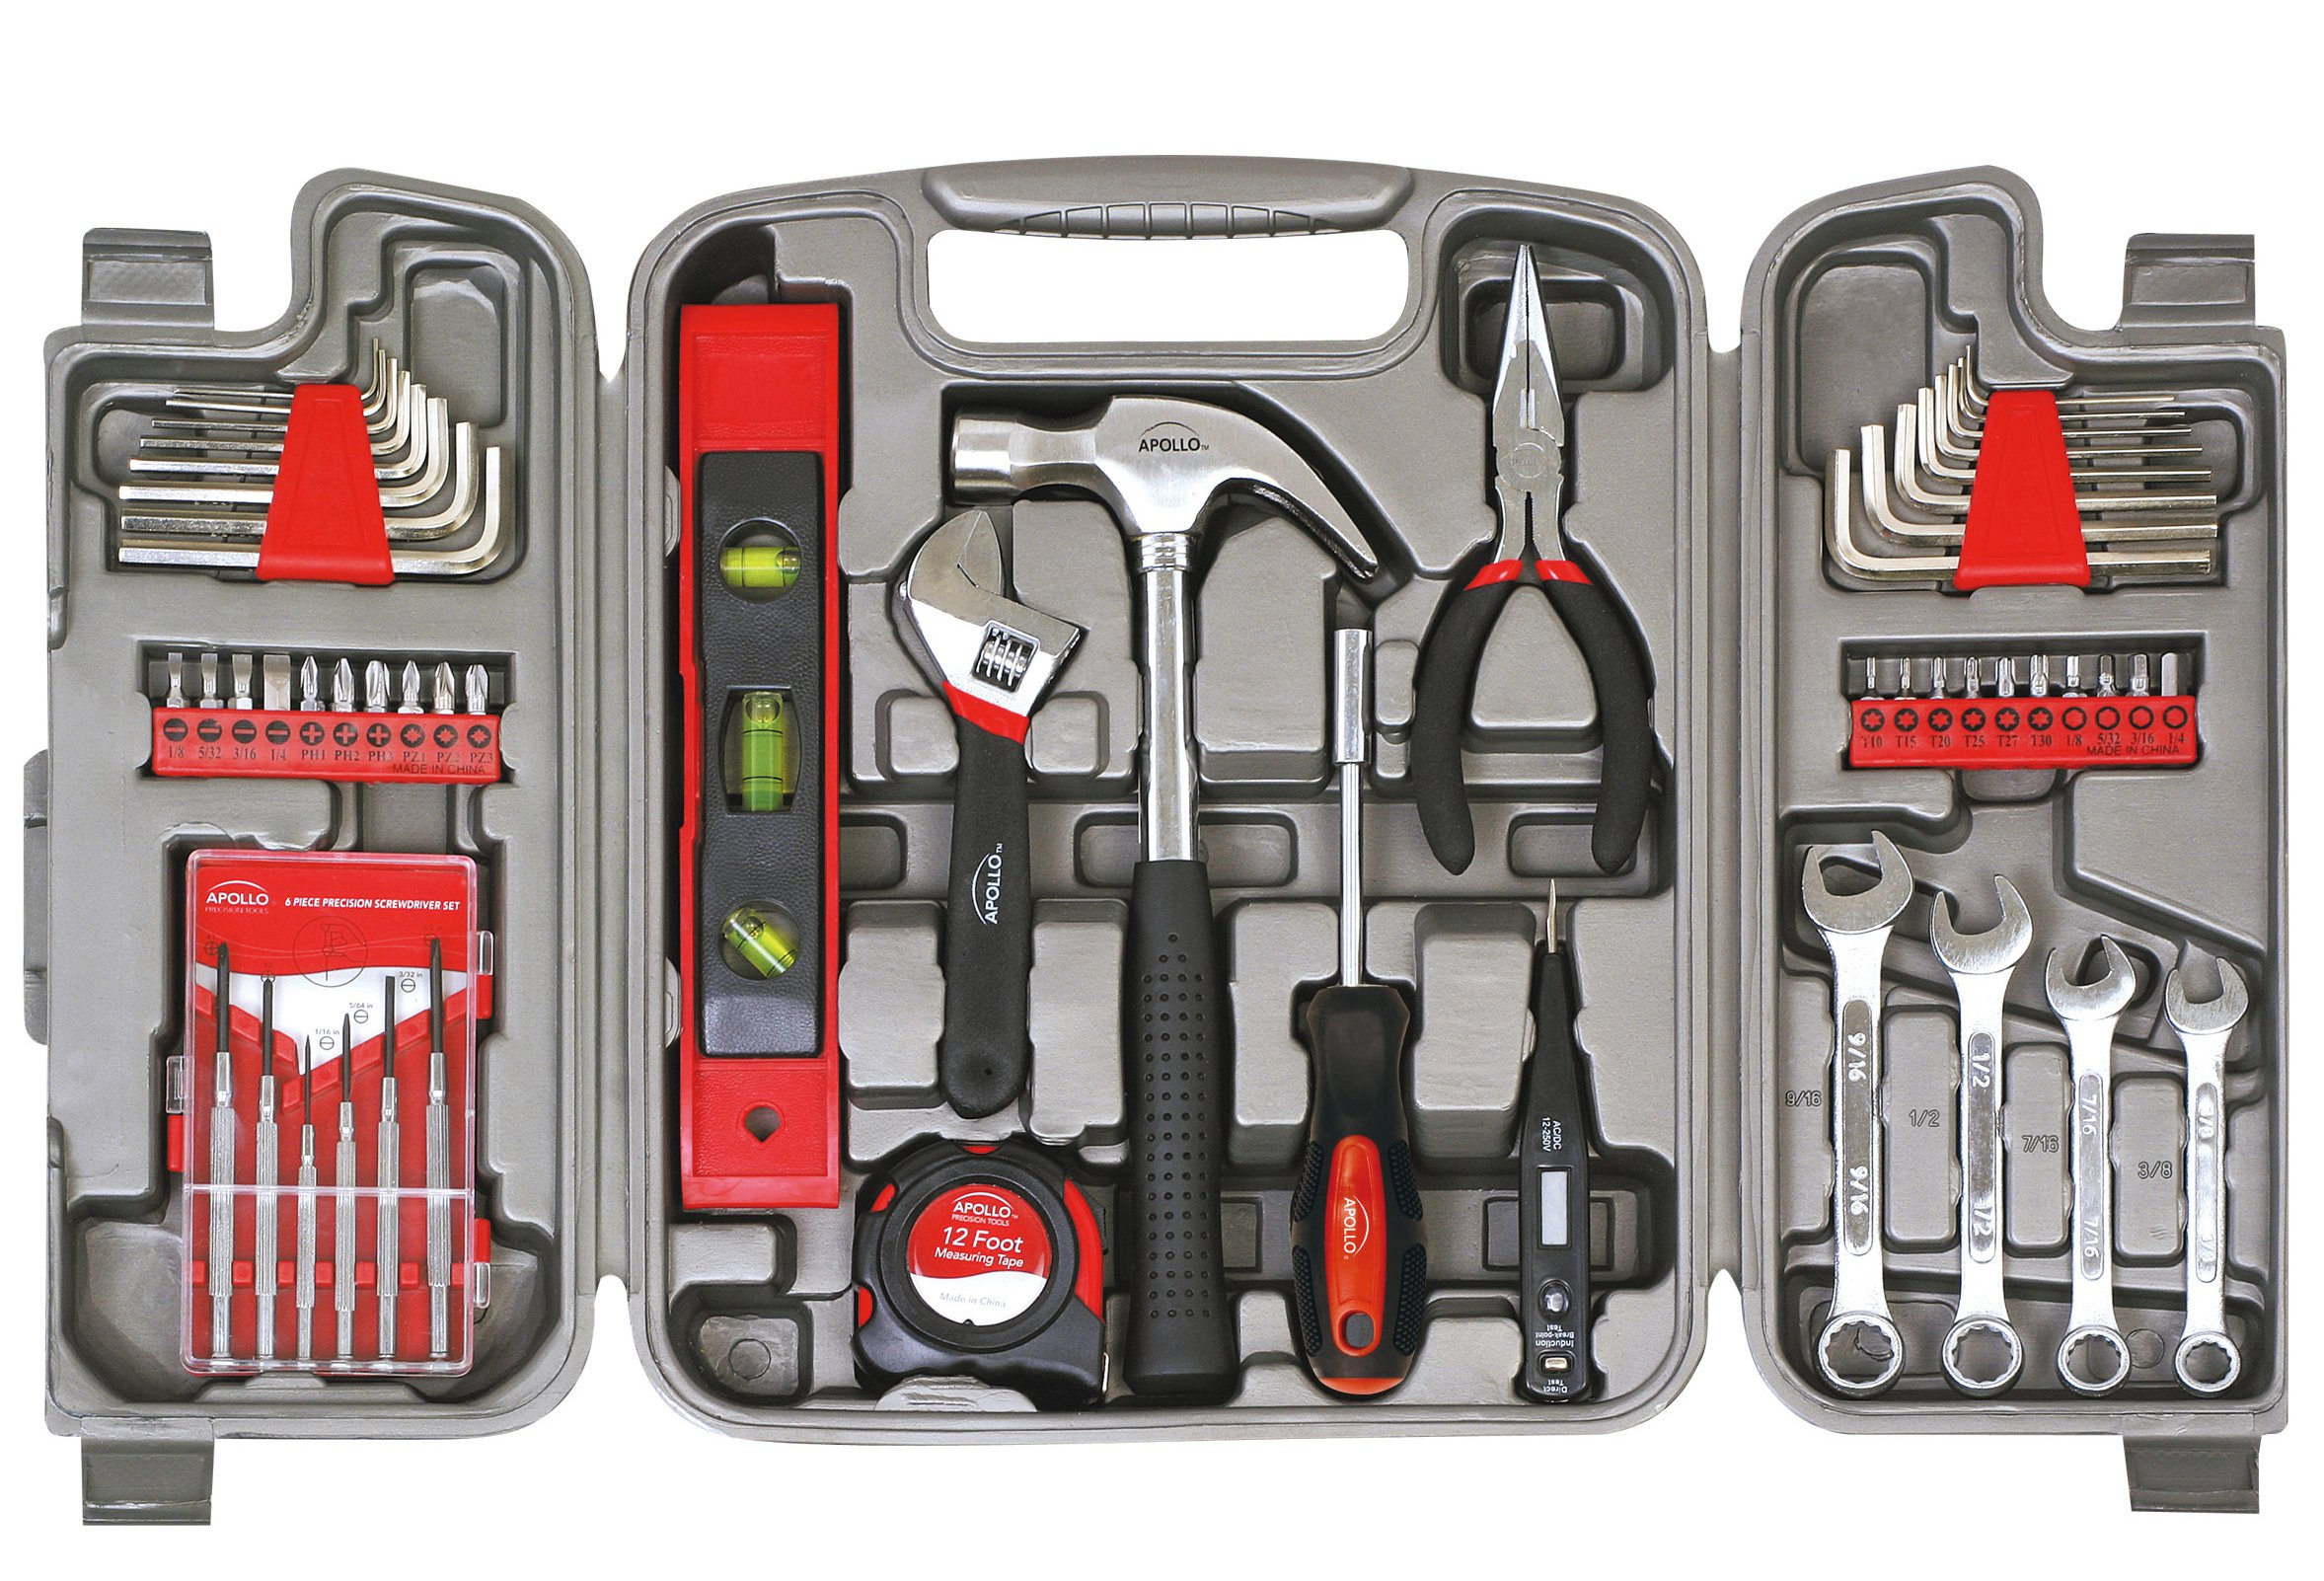 Apollo Tools DT9408 53 Piece Household Tool Set with Wrenches, Precision Screwdriver Set and Most Reached for Hand Tools in Storage Case by Apollo Tools